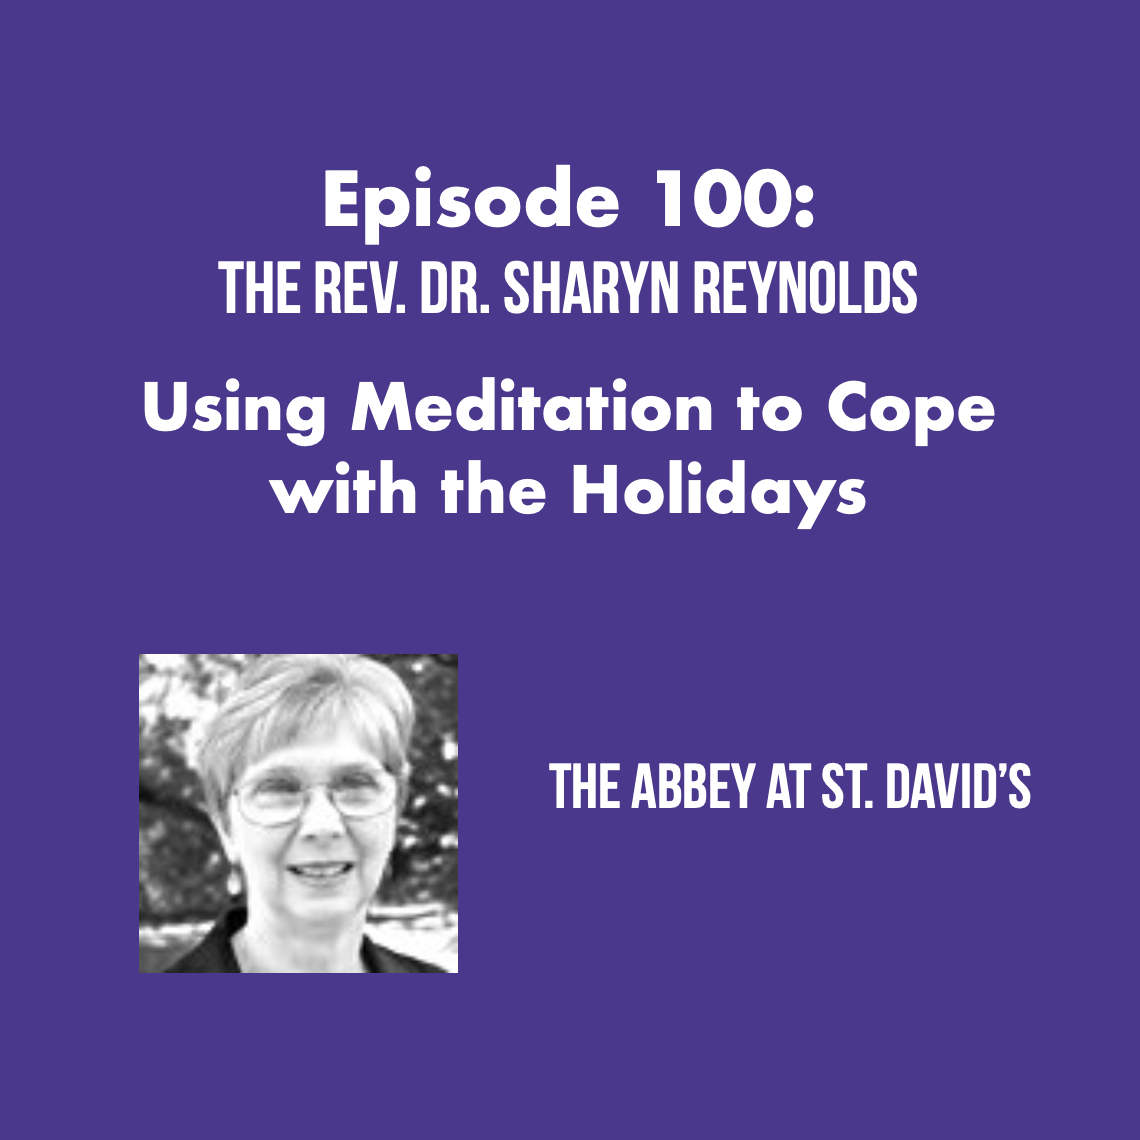 Episode 100: Using Meditation to Cope with the Holidays with The Rev. Dr. Sharyn Reynolds